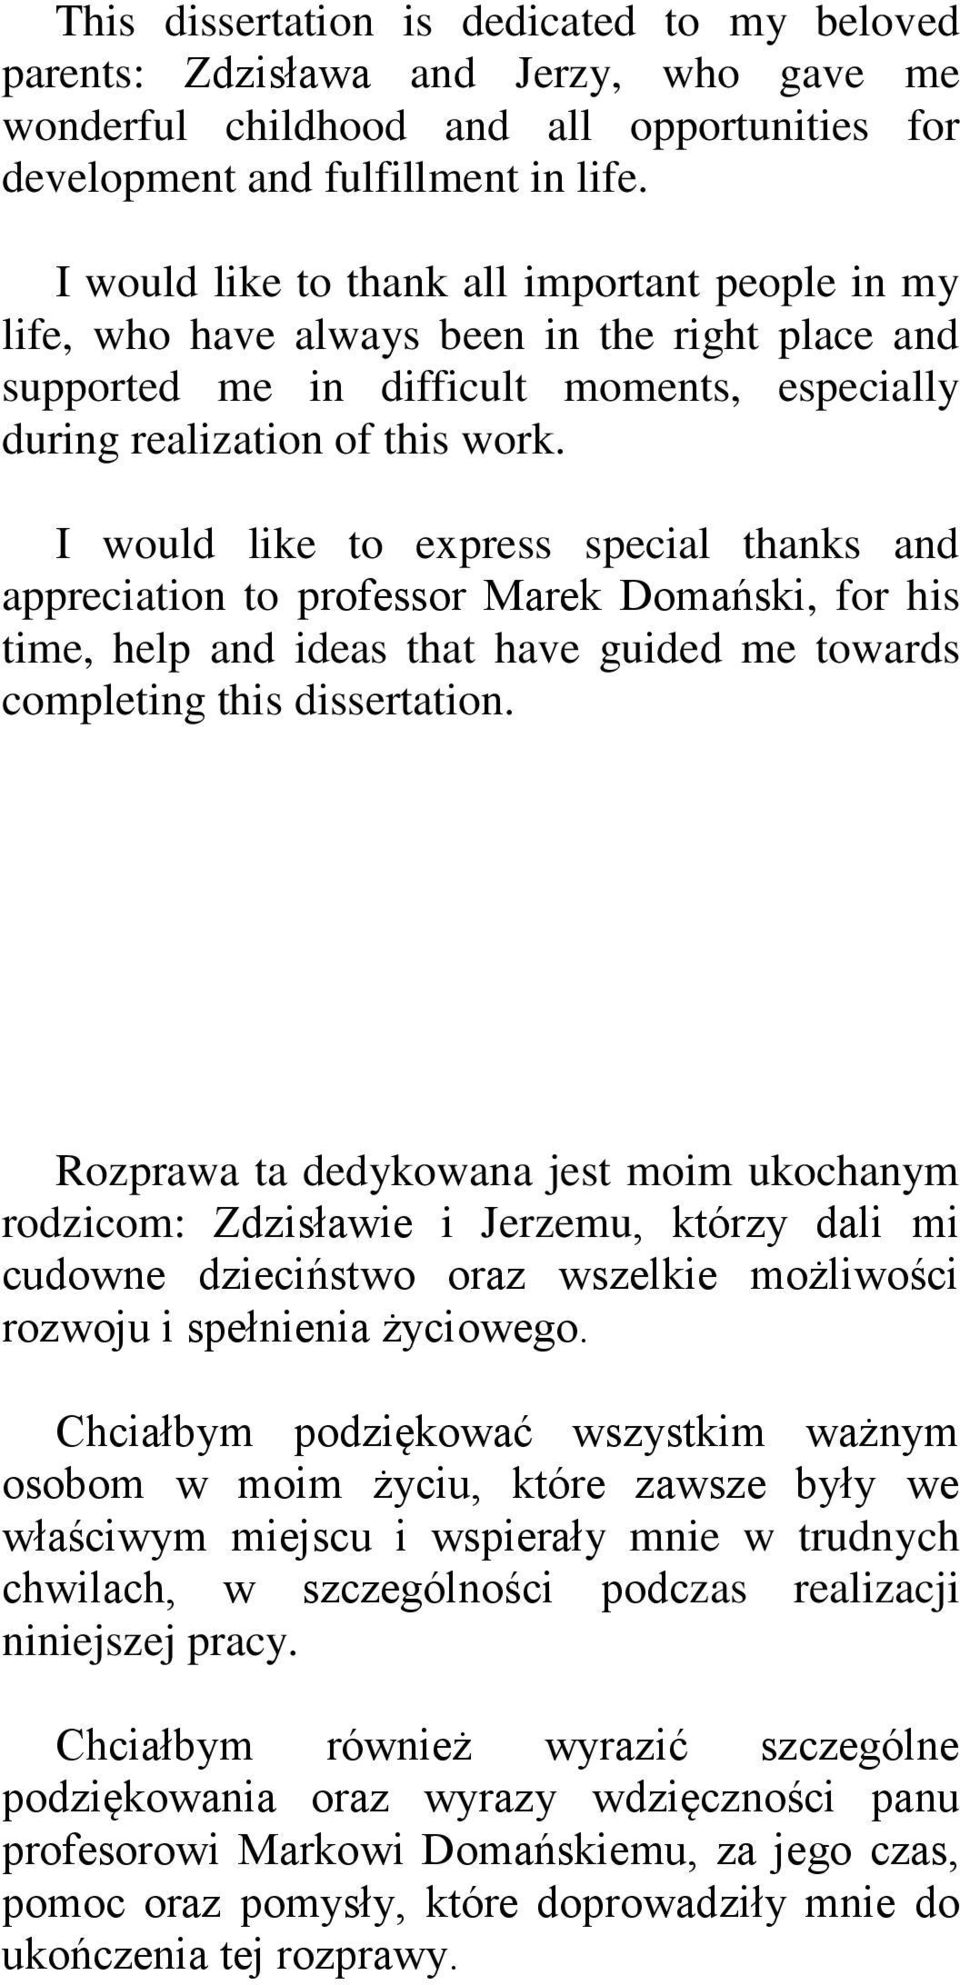 I would like to express special thanks and appreciation to professor Marek Domański, for his time, help and ideas that have guided me towards completing this dissertation.